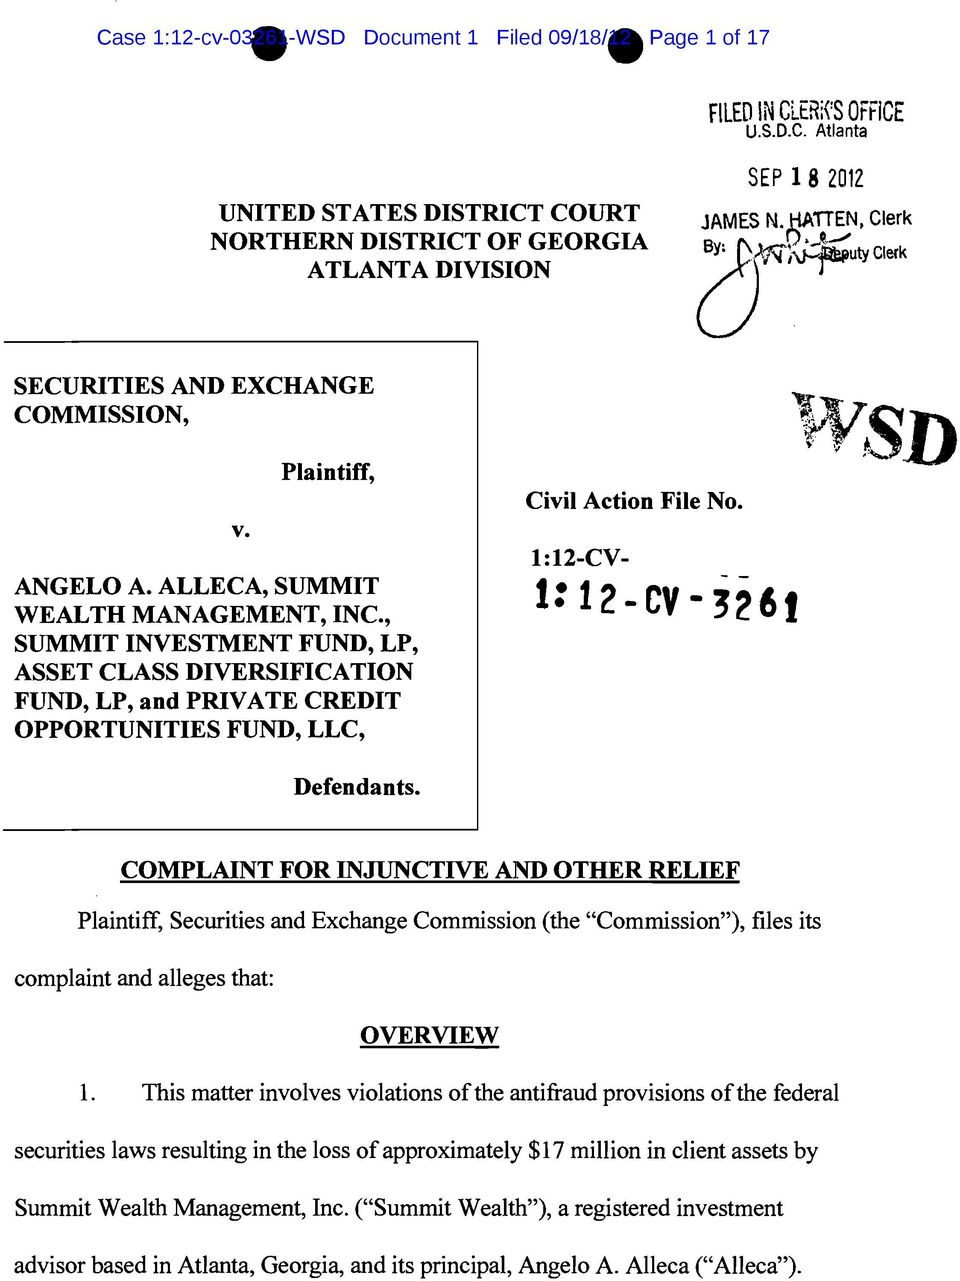 "1:12-CV- 1: 12-CV-3261 Defendants. COMPLAINT FOR INJUNCTIVE AND OTHER RELIEF Plaintiff, Securities and Exchange Commission (the ""Commission""), files its complaint and alleges that: OVERVIEW 1."